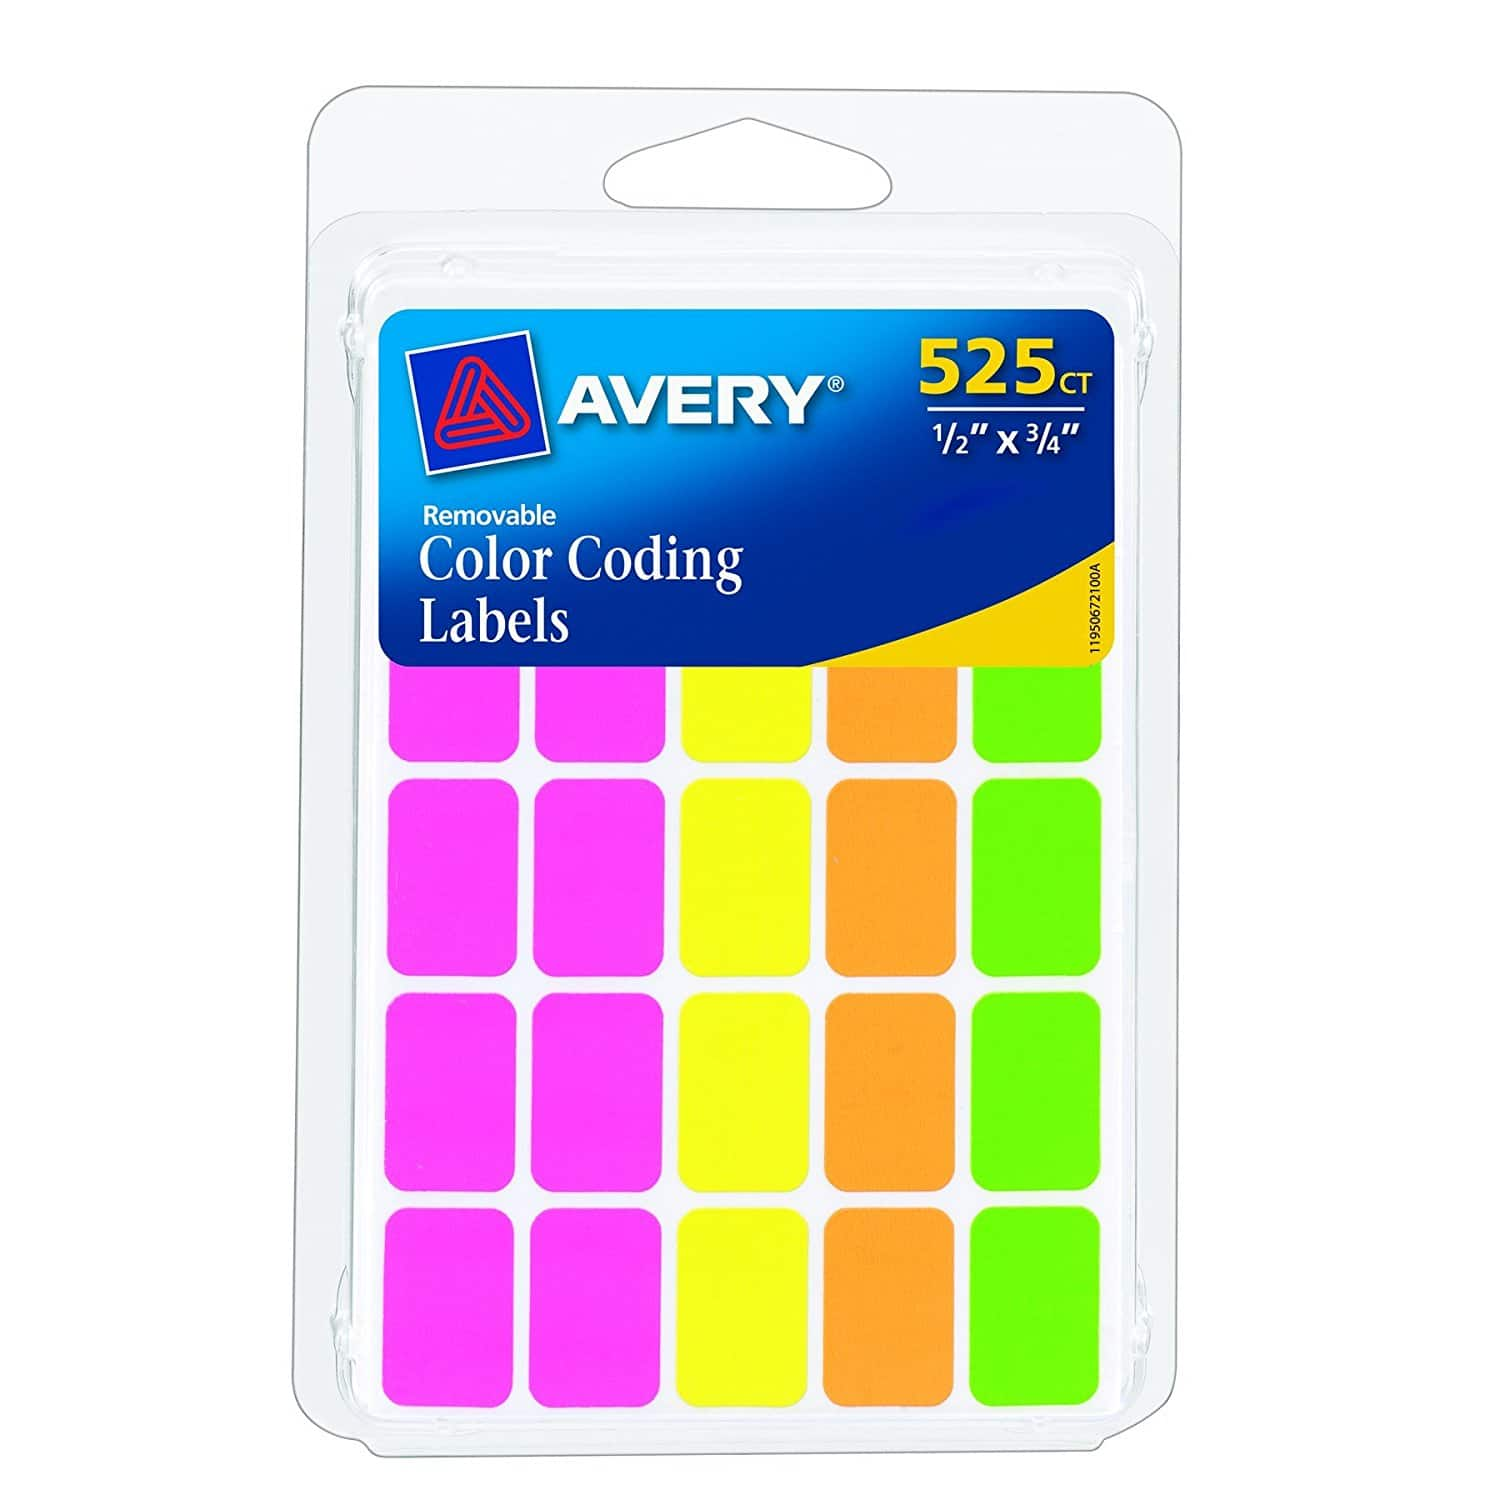 PREVIOUS FRONT PAGE DEAL BUT CHEAPER Avery Removable Color Coding Labels, Rectangular, Assorted Colors, Pack of 525 ONLY $0.68 after slow ship credit !!